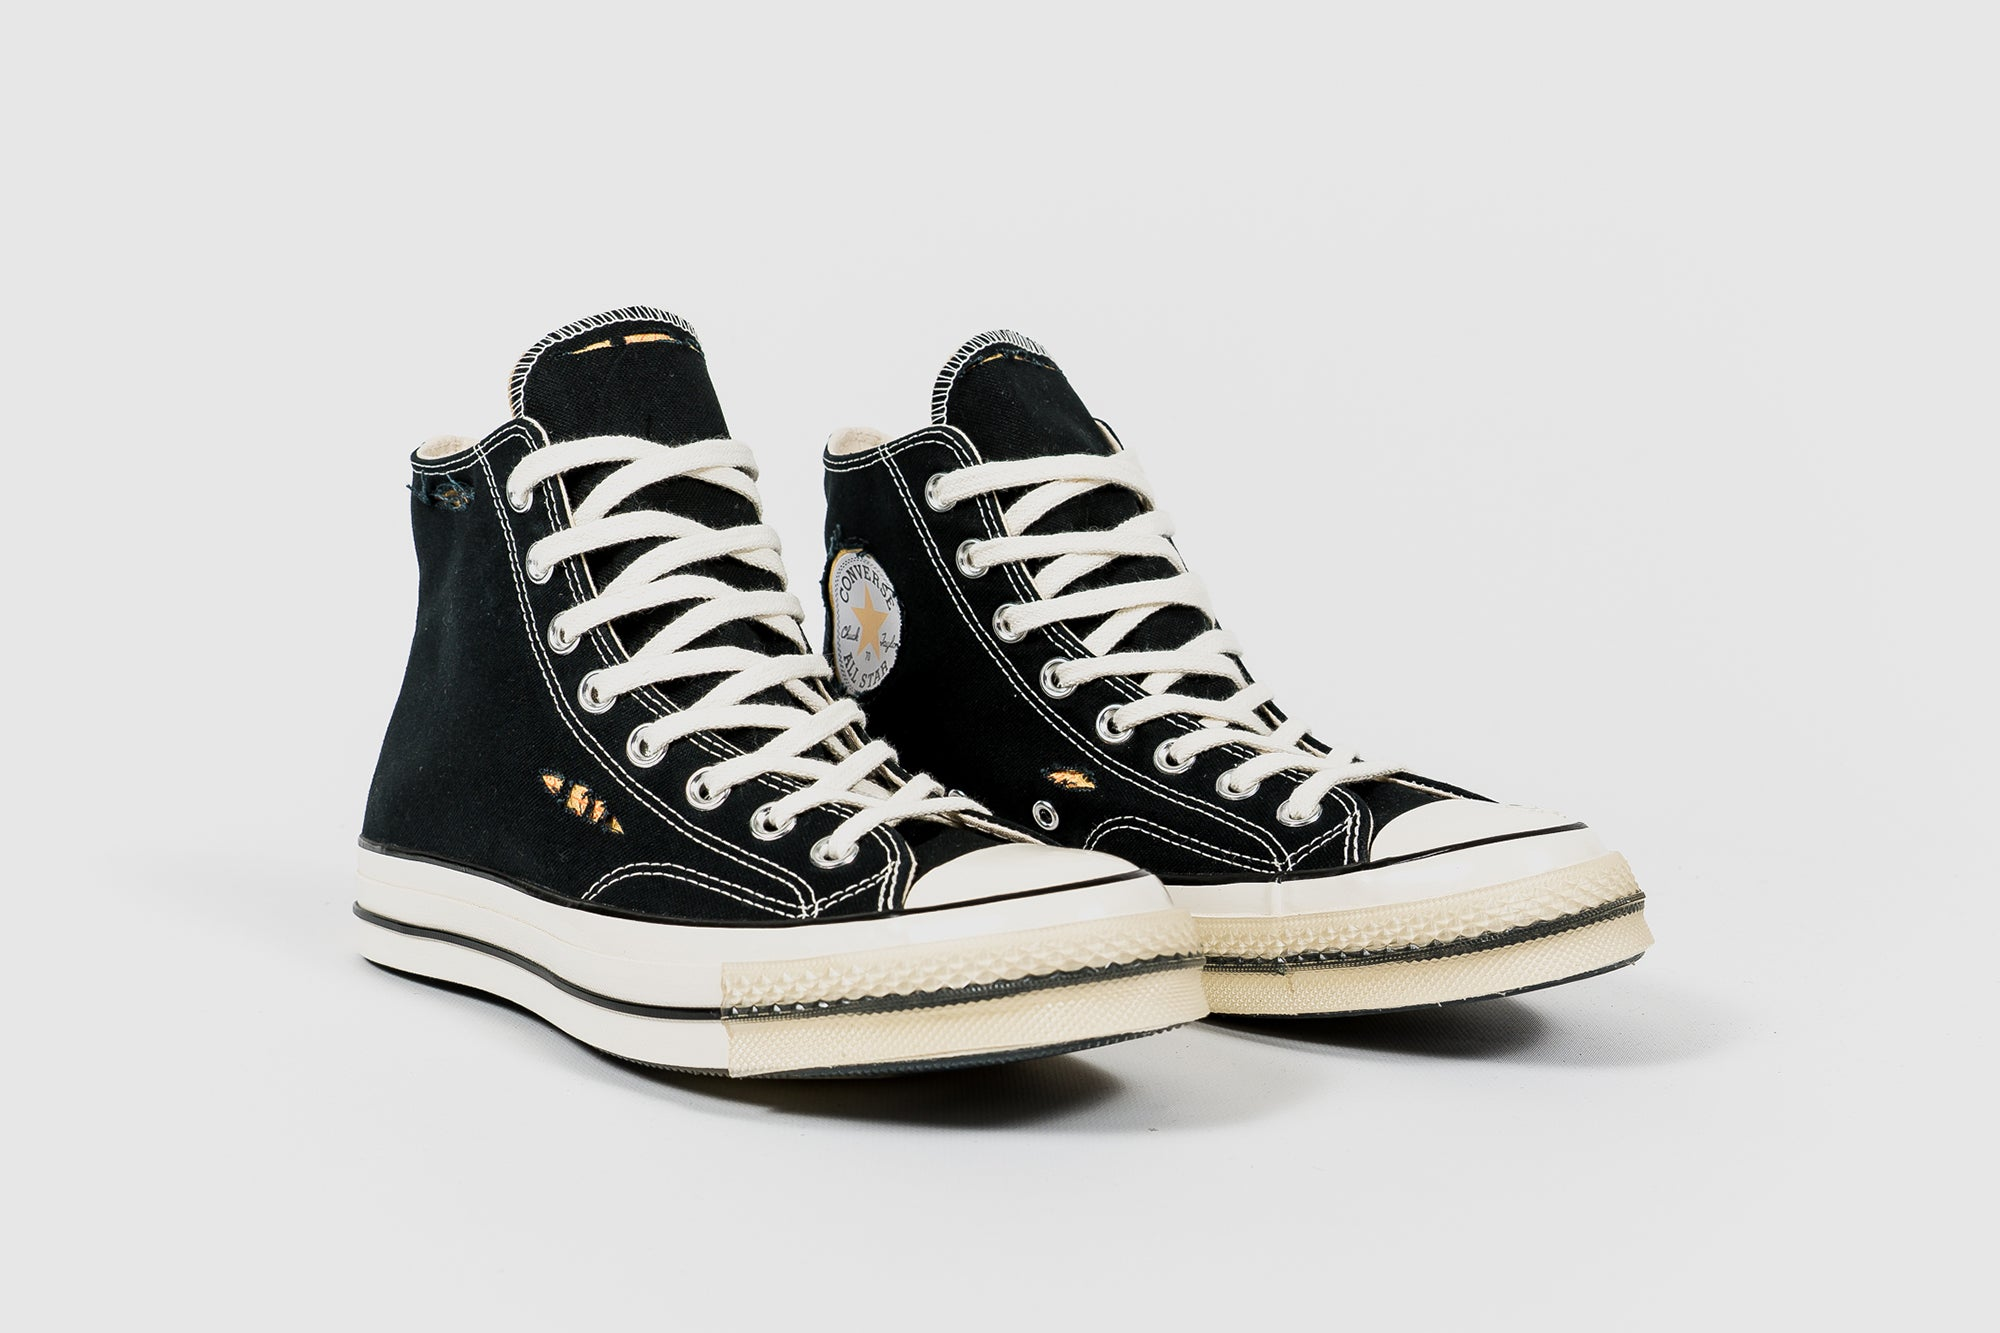 dd2f858160fa CONVERSE X DR. WOO CHUCK 70 HI – PACKER SHOES